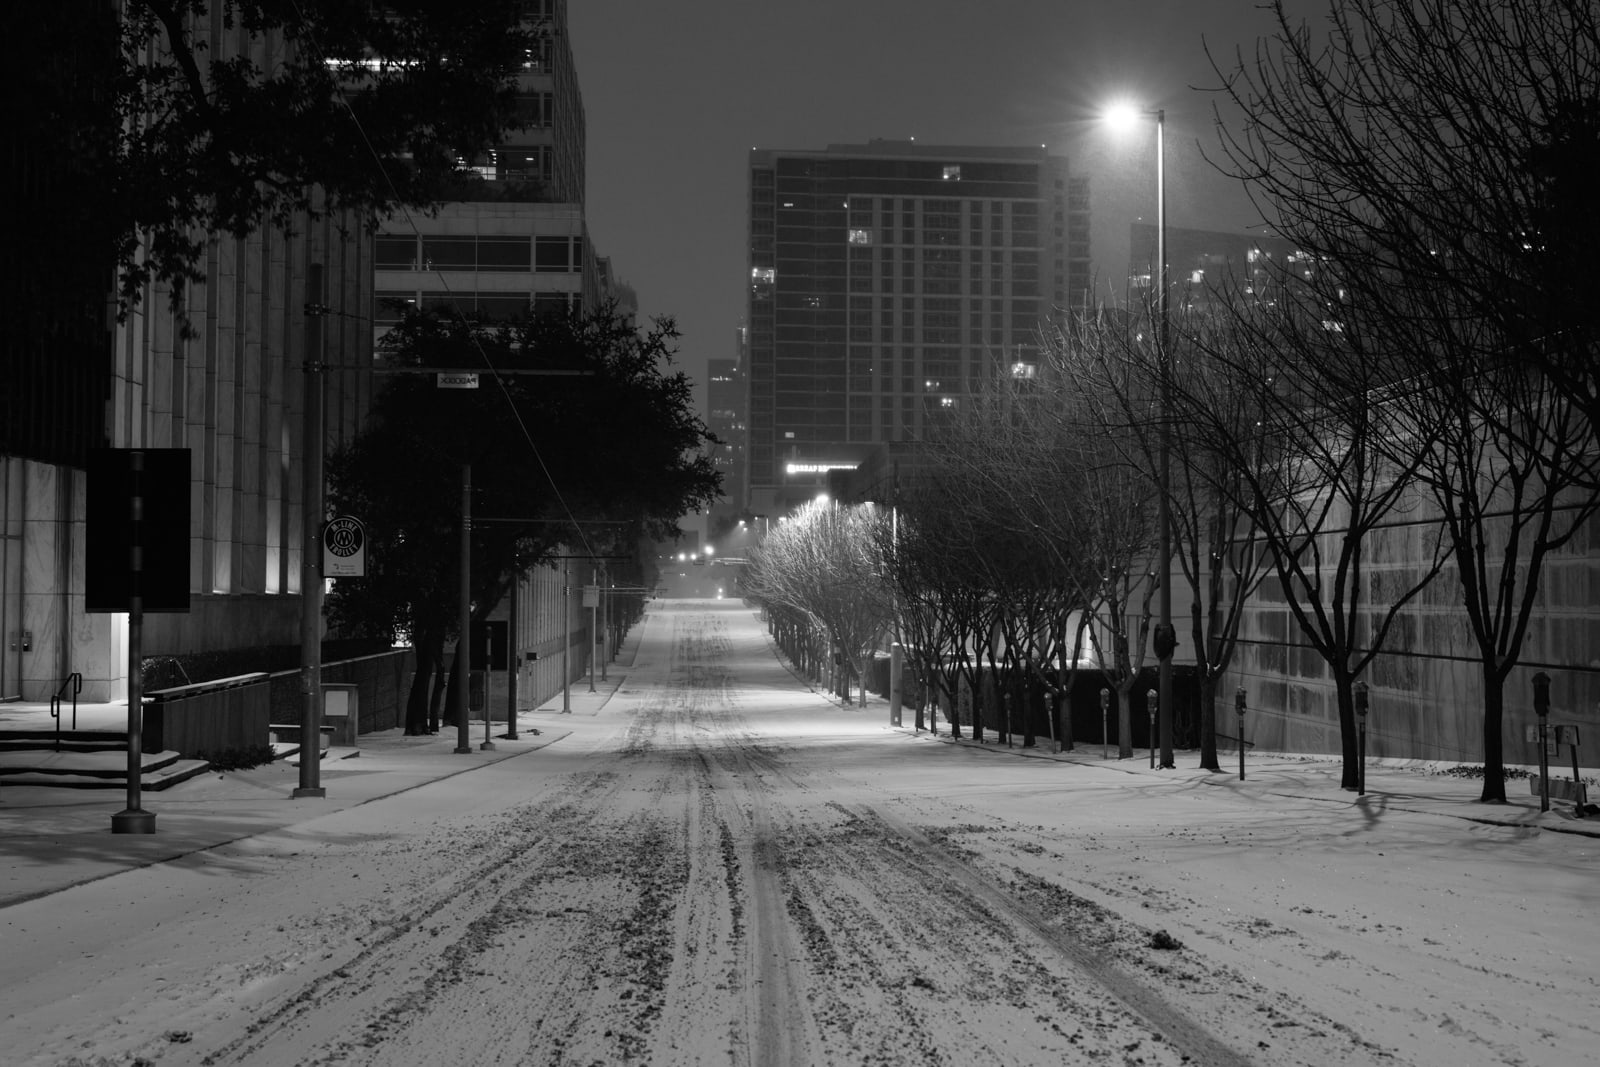 St. Paul Street in Dallas